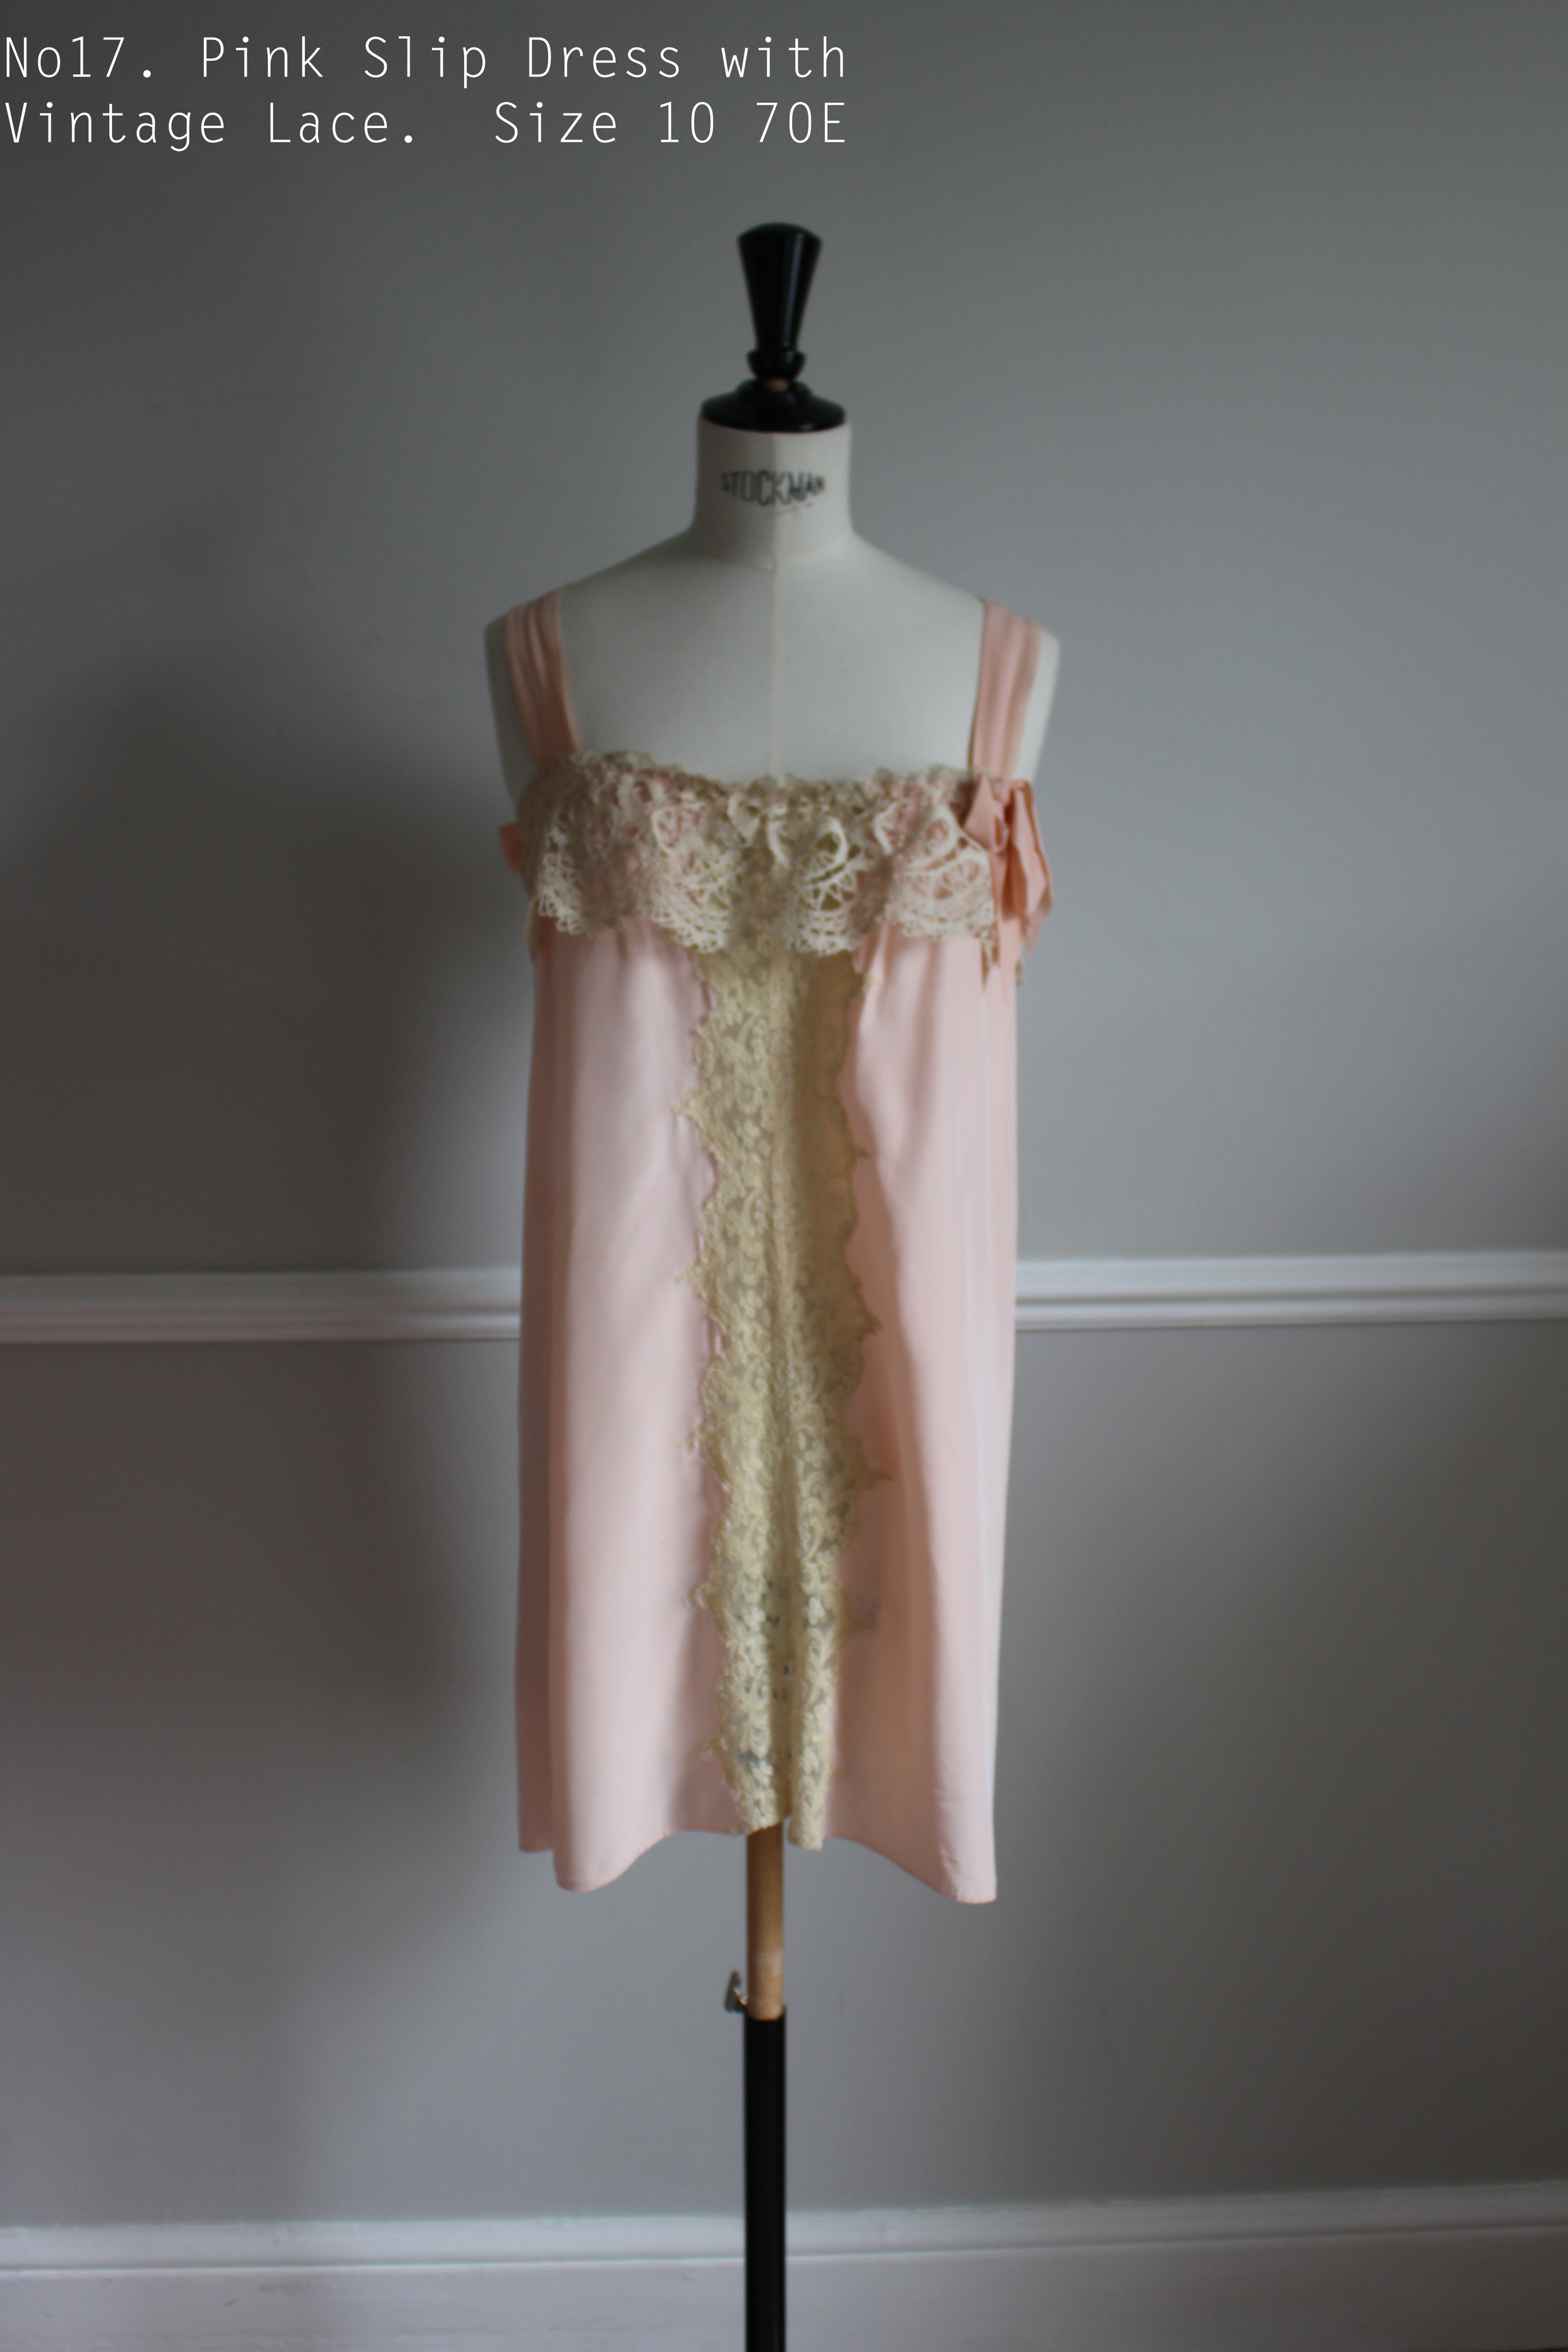 No17. Pink Slip Dress with Vintage Lace.  Size 10 70E.jpg